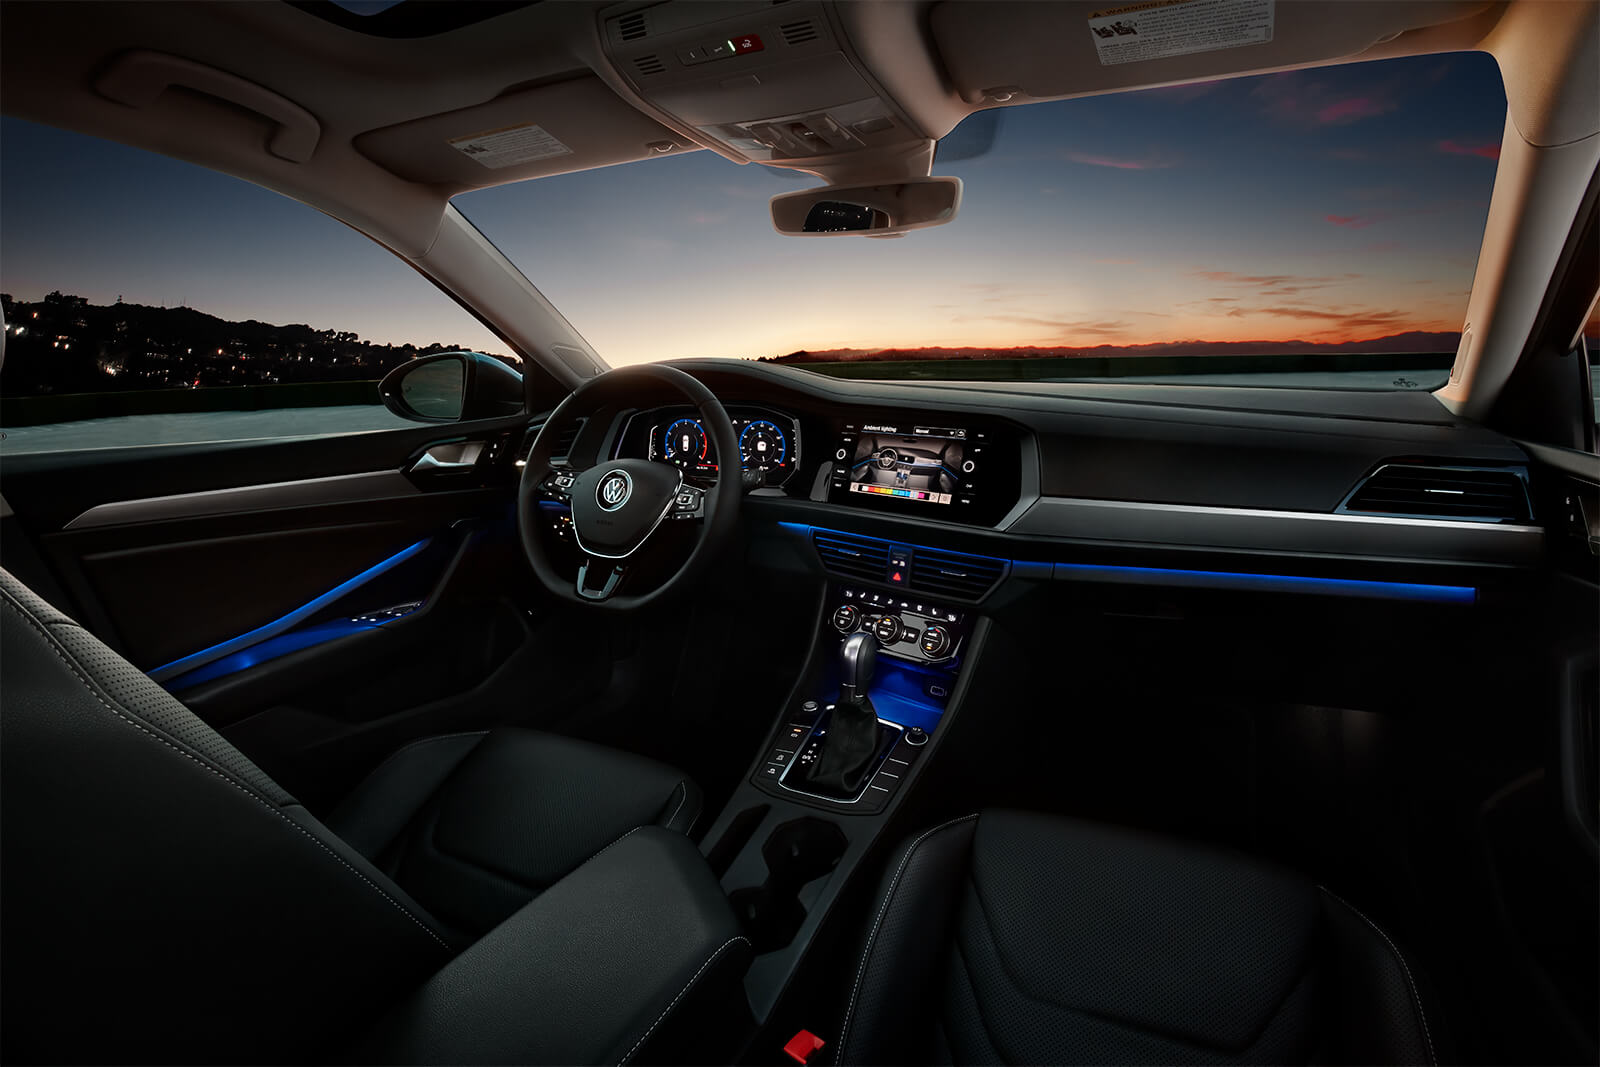 Interior of the 2019 Volkswagen Jetta